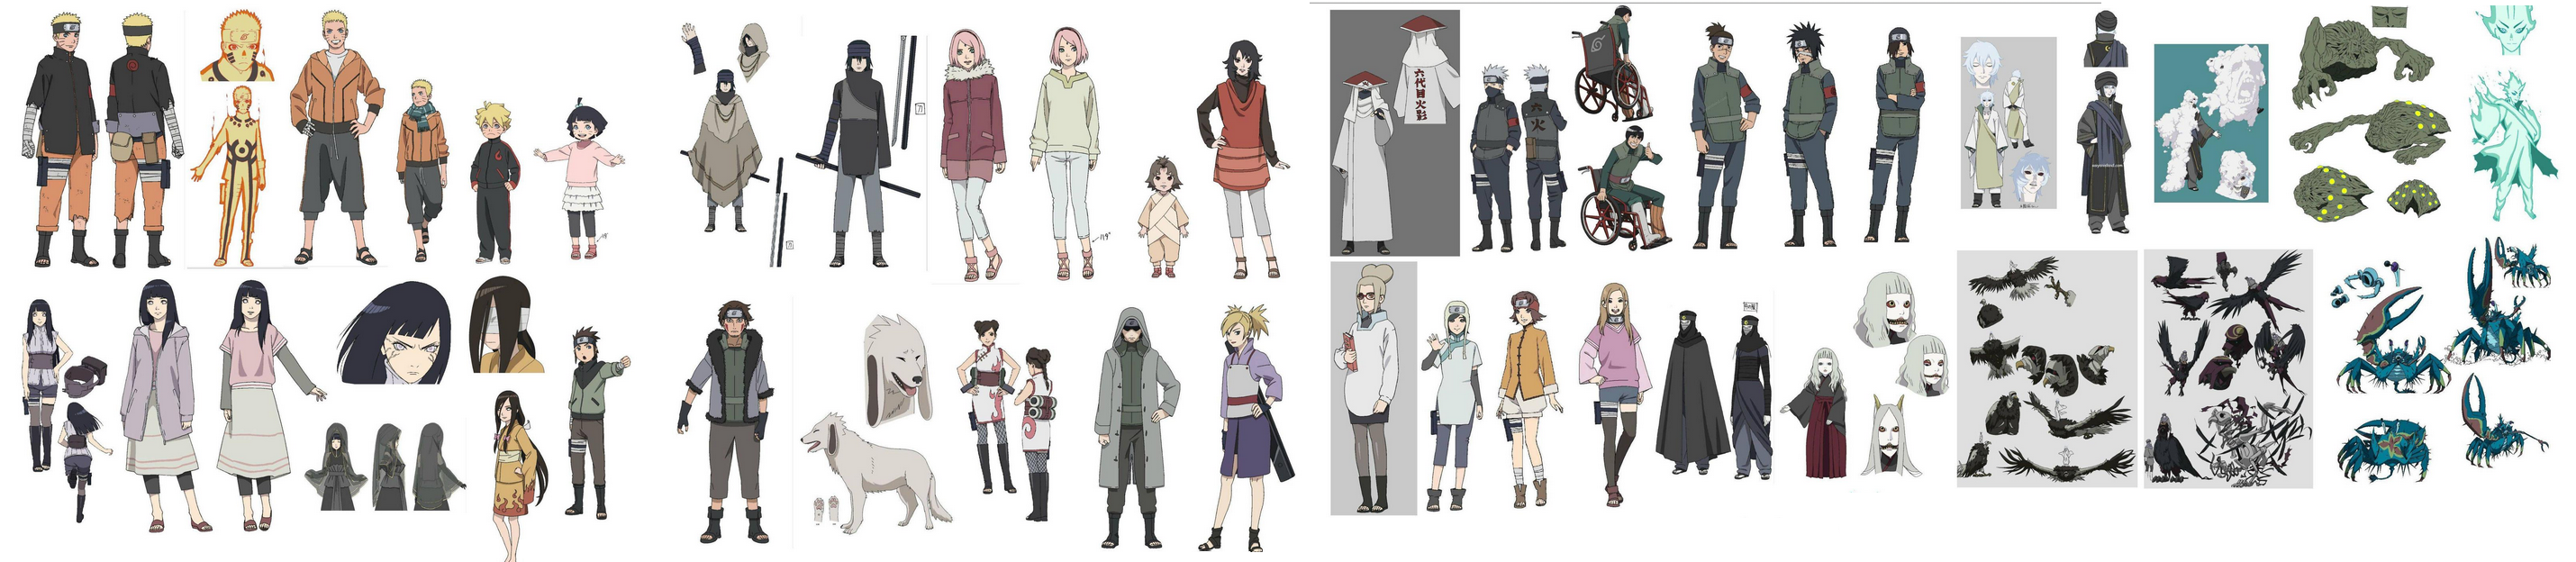 Naruto The Last Character Design Color : The last naruto movie characters art by aloli on